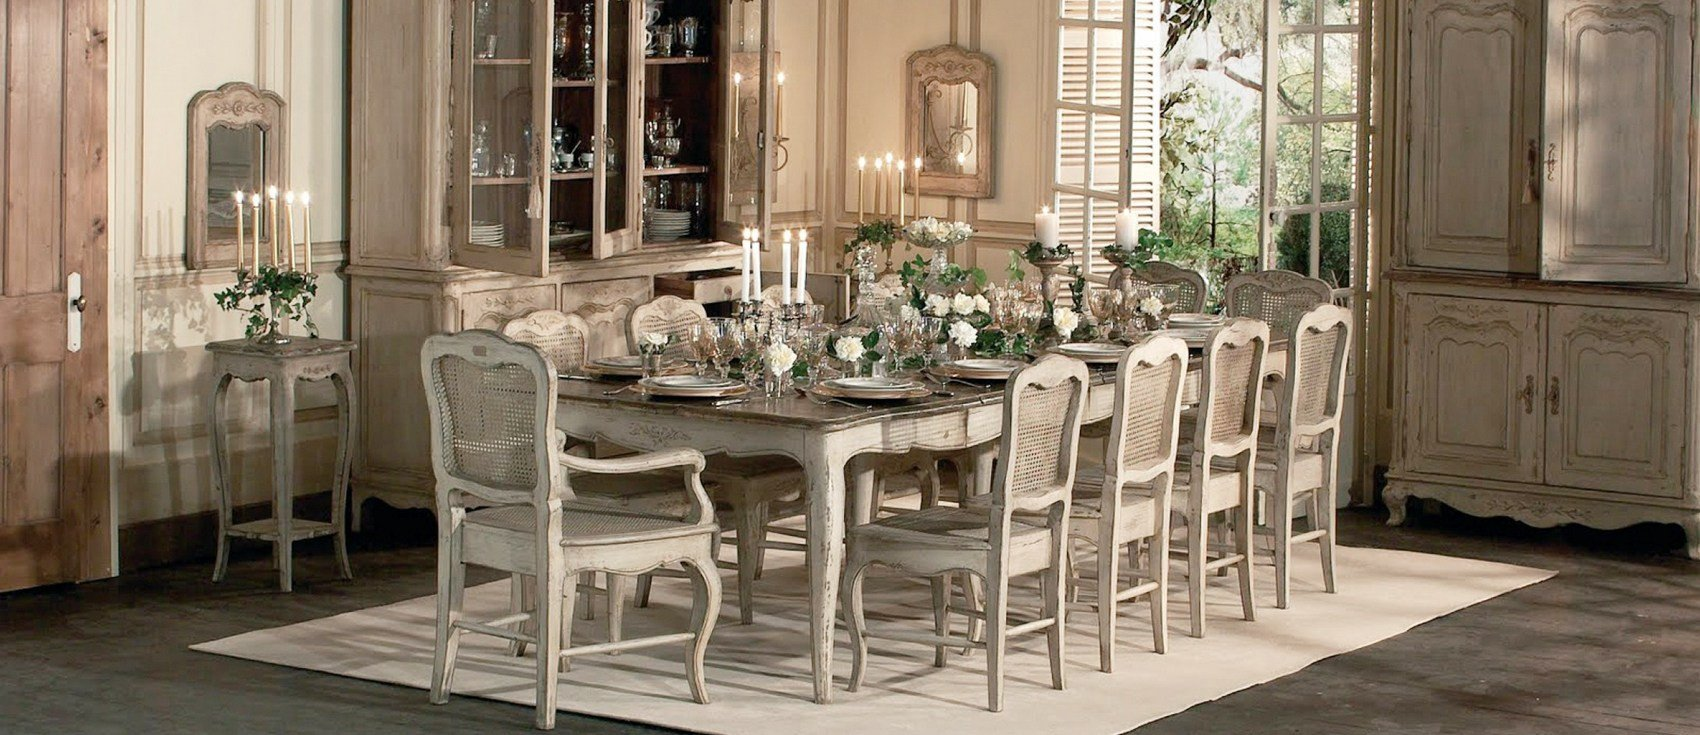 Pictures Of French Country Decor Fresh French Country Decor & French Country Decorating Ideas